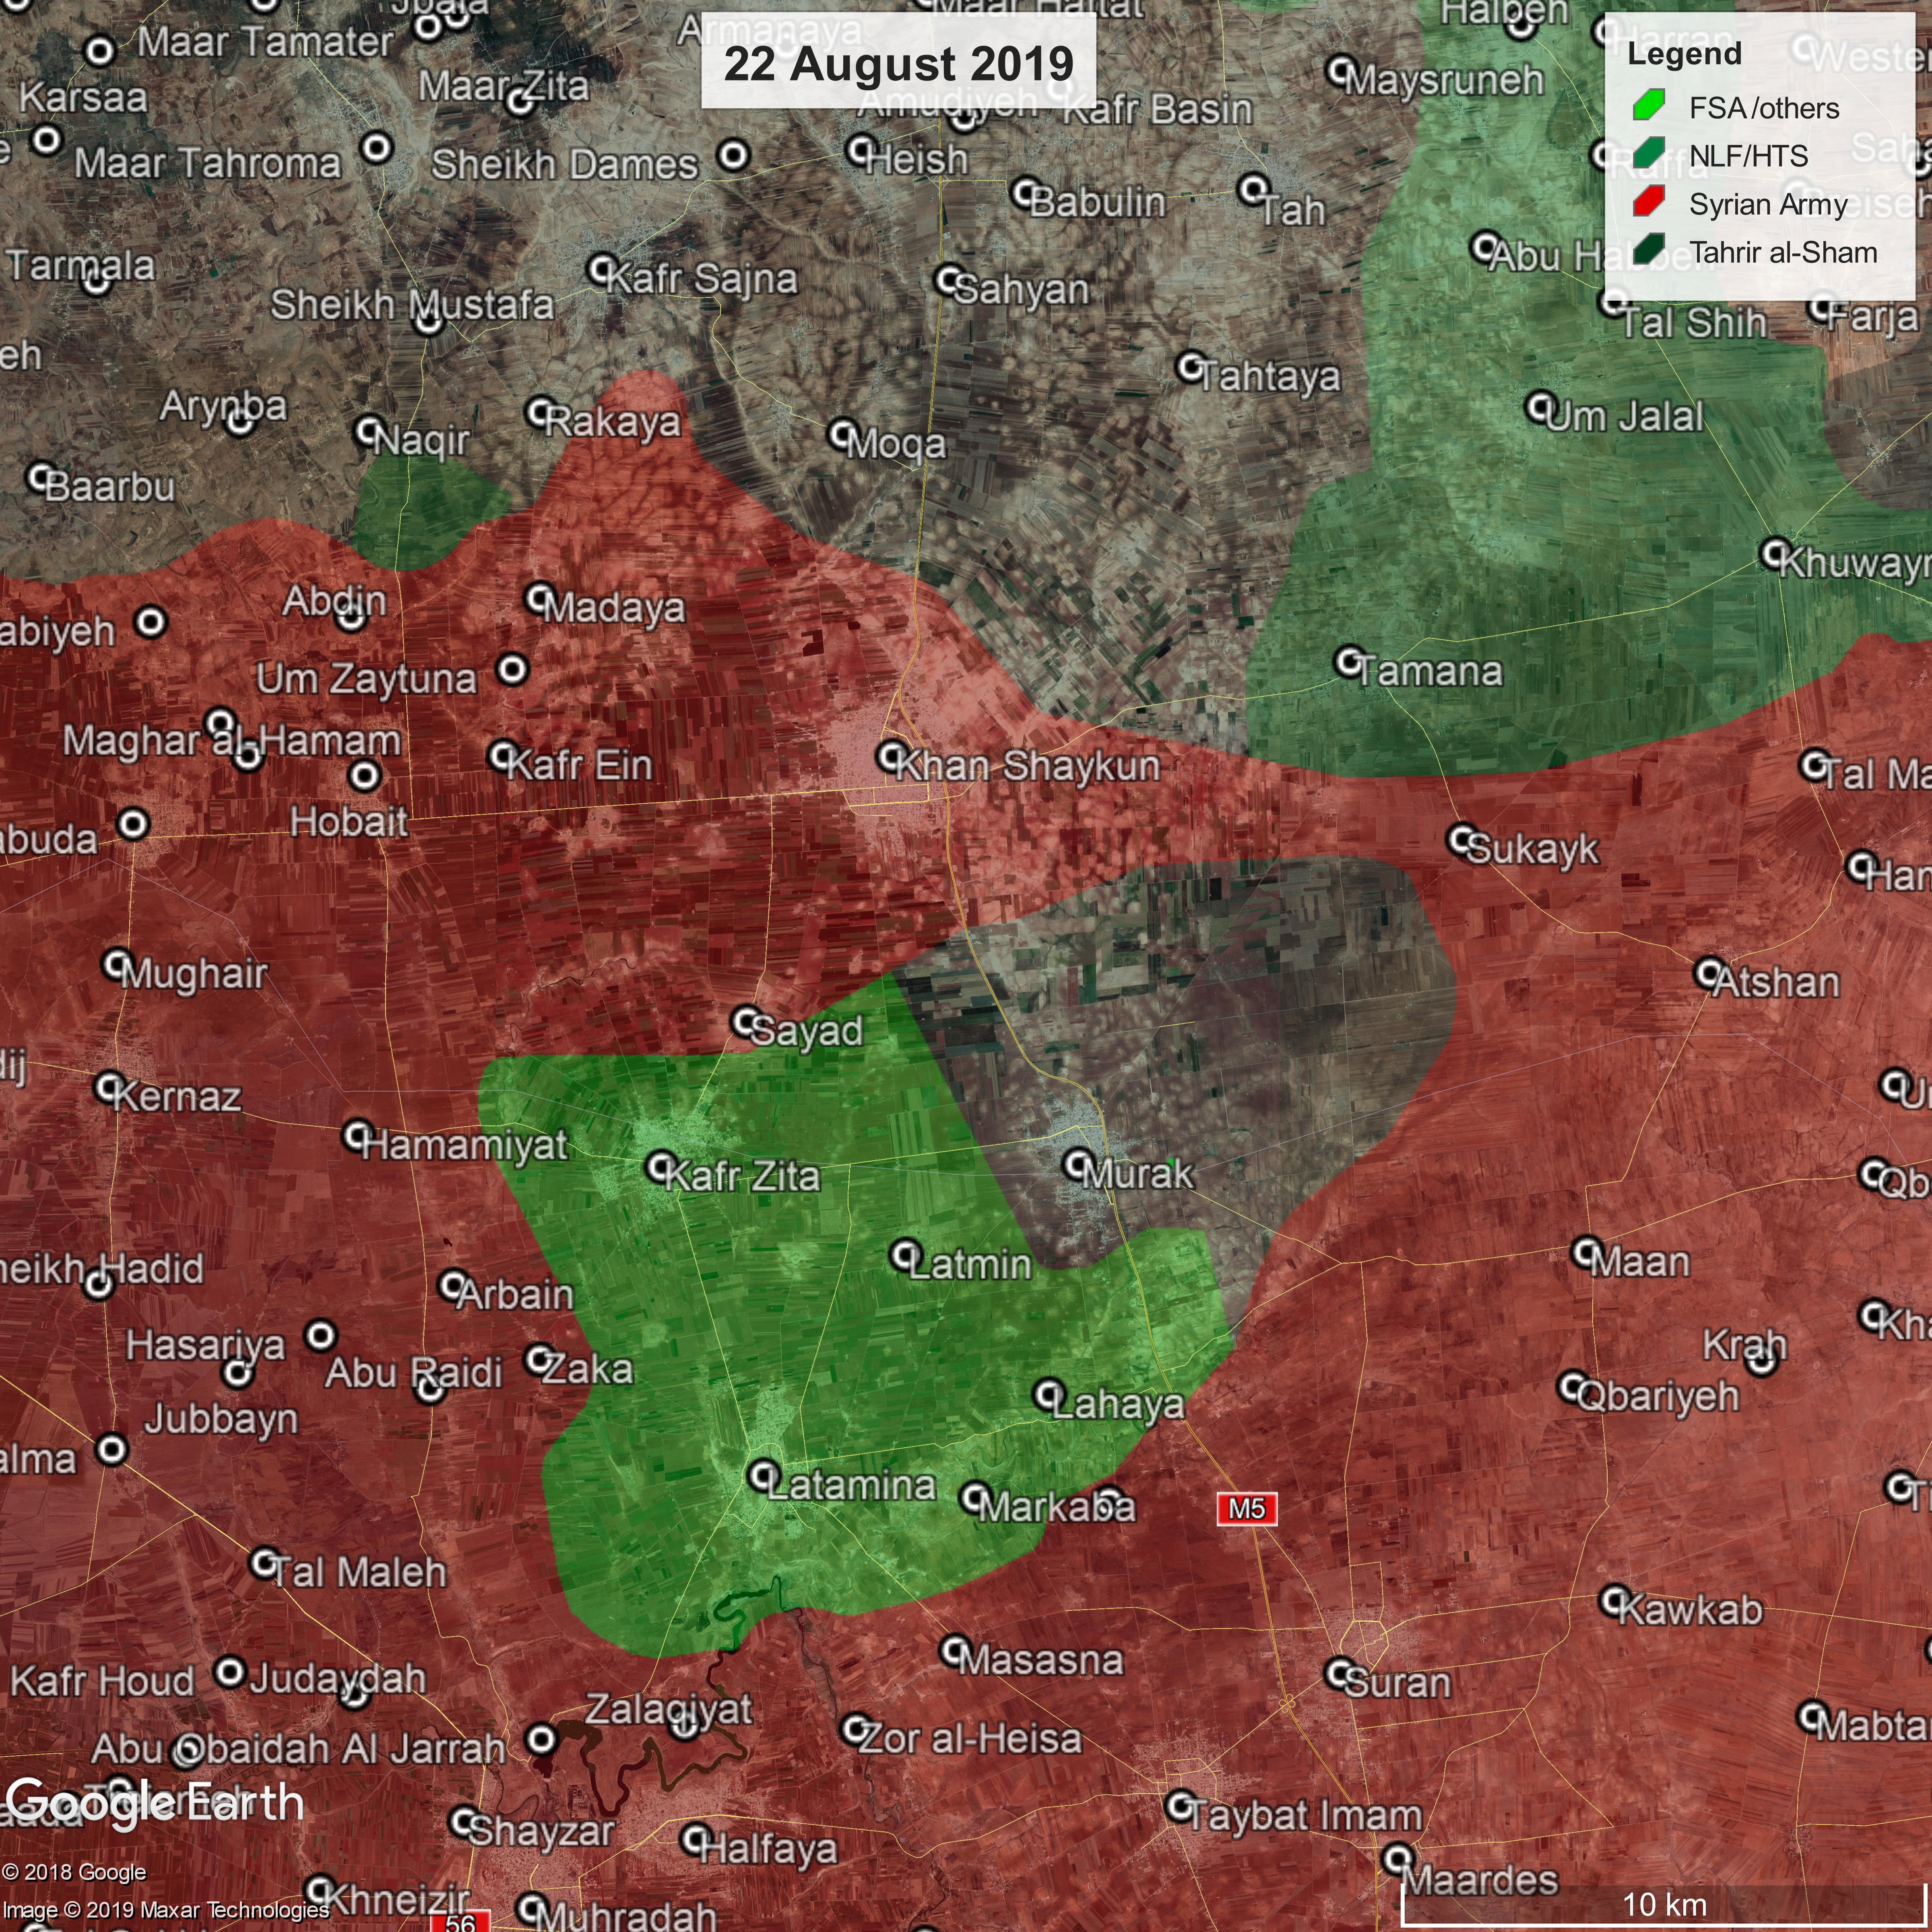 Map update: Battle of Northern Hama – 22nd of August 2019